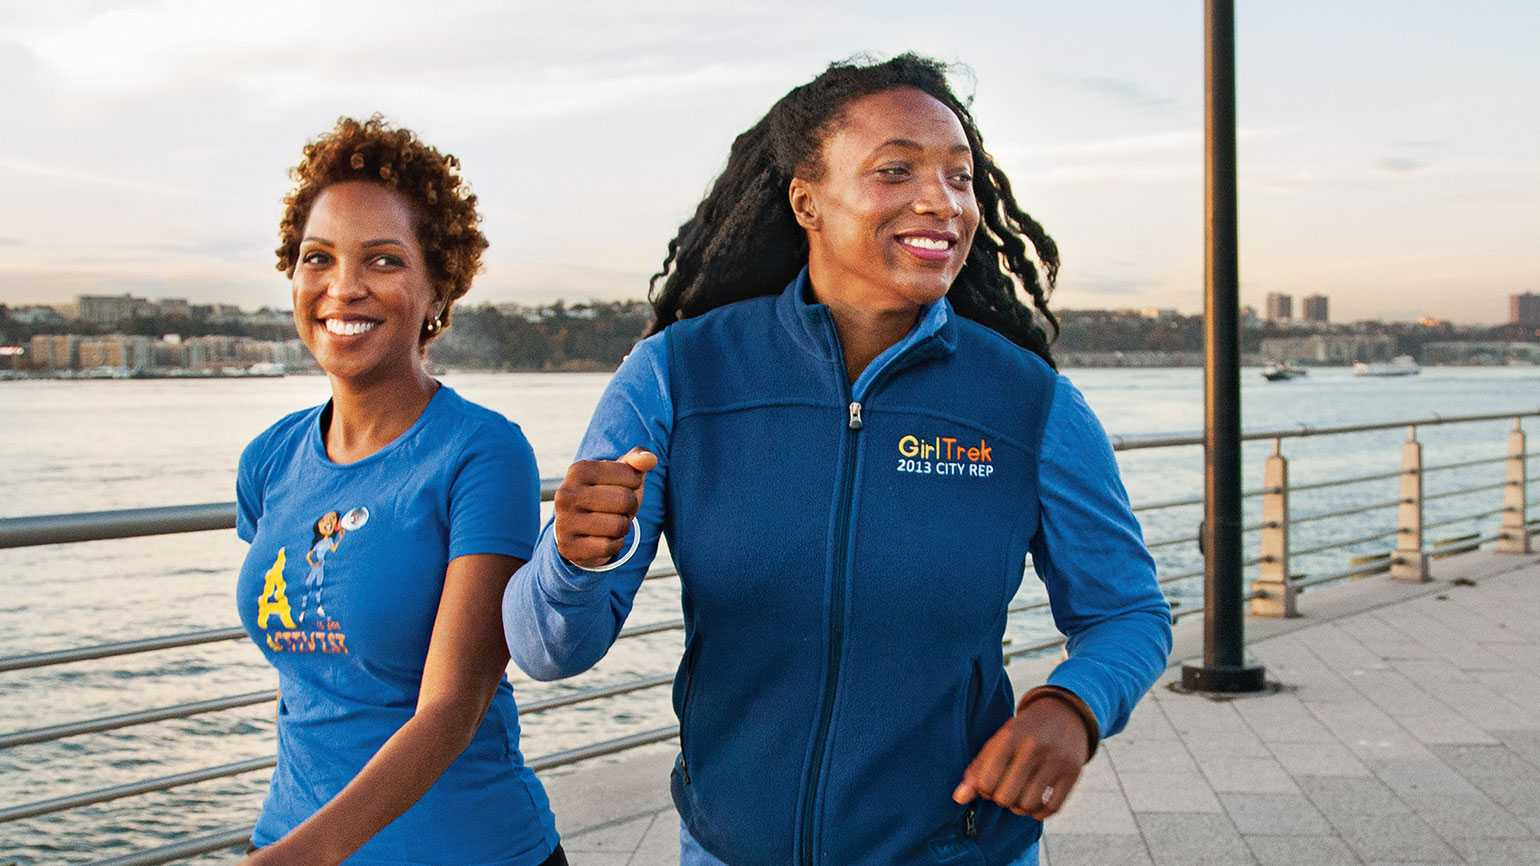 T. Morgan Dixon (right) and Vanessa Garrison, founders of GirlTrek